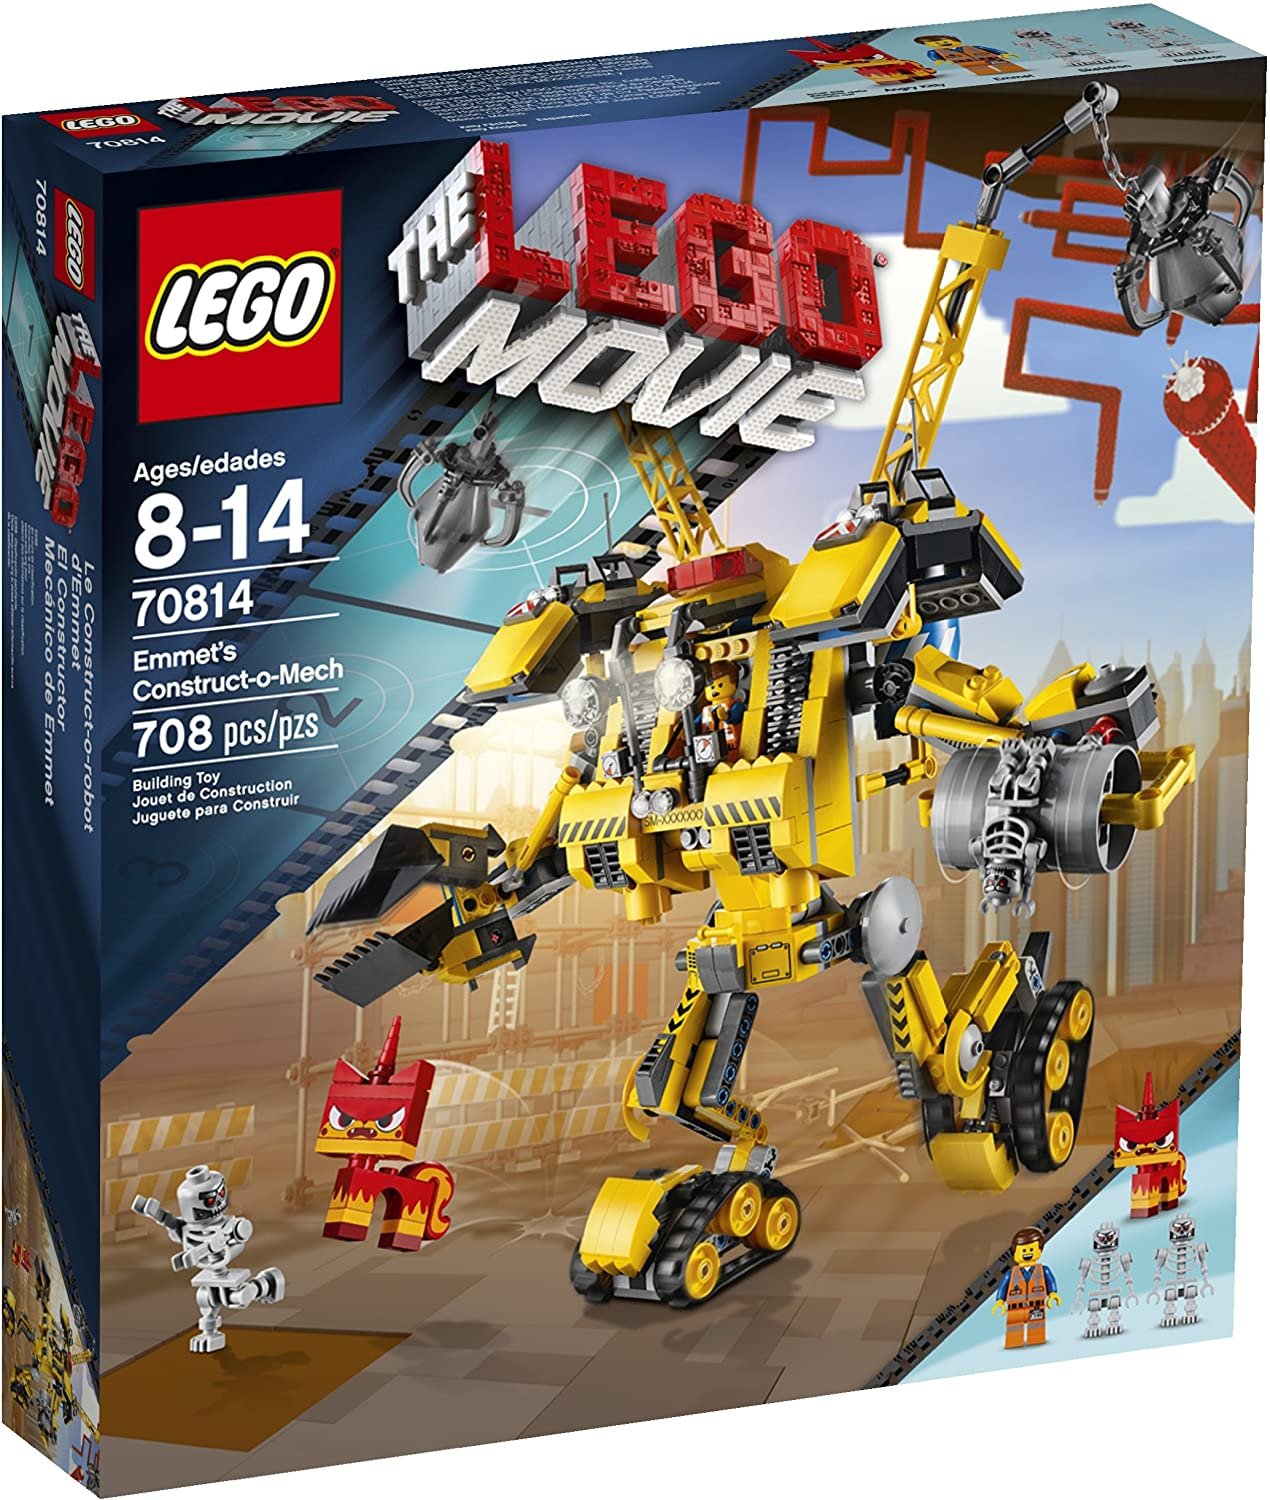 Amazon Com Lego Movie 70814 Emmet S Construct O Mech Building Set Discontinued By Manufacturer Toys Games